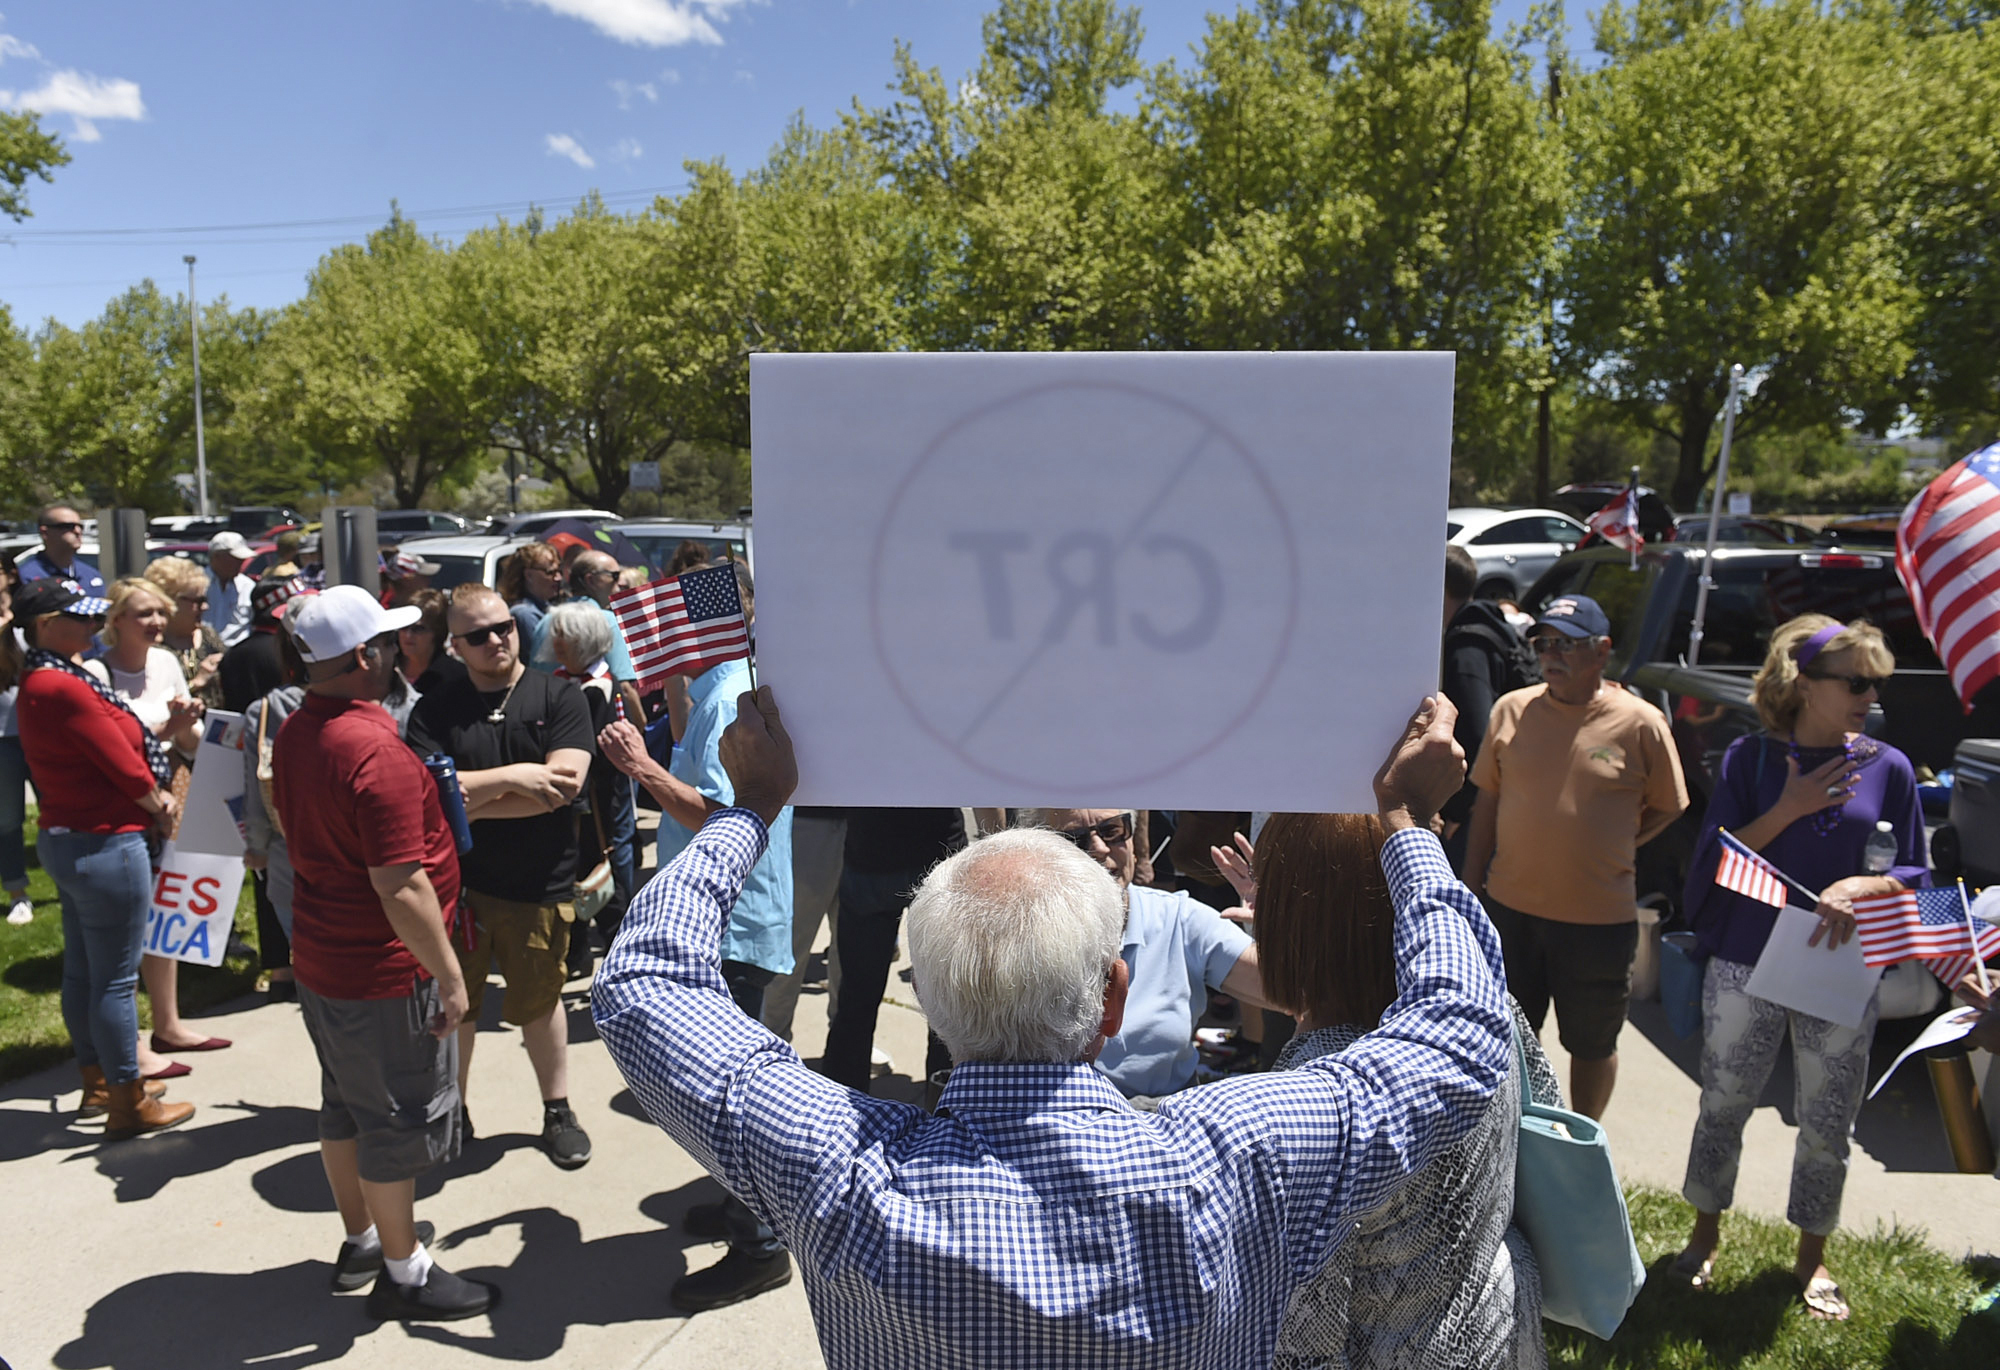 A man holds up a sign against Critical Race Theory during a protest outside a Washoe County School District board meeting on May 25, 2021, in Reno, Nev. Nevada school boards are becoming hotbeds of political polarization where parents are clashing over how to teach students about racism and its role in U.S. history. In Washoe County and Carson City, parents spoke Tuesday, June 8, 2021, against the concept of critical race theory being taught in schools, despite the fact that officials in both districts insist they have no plans to include it in lesson plans. (Andy Barron/Reno Gazette-Journal via AP)